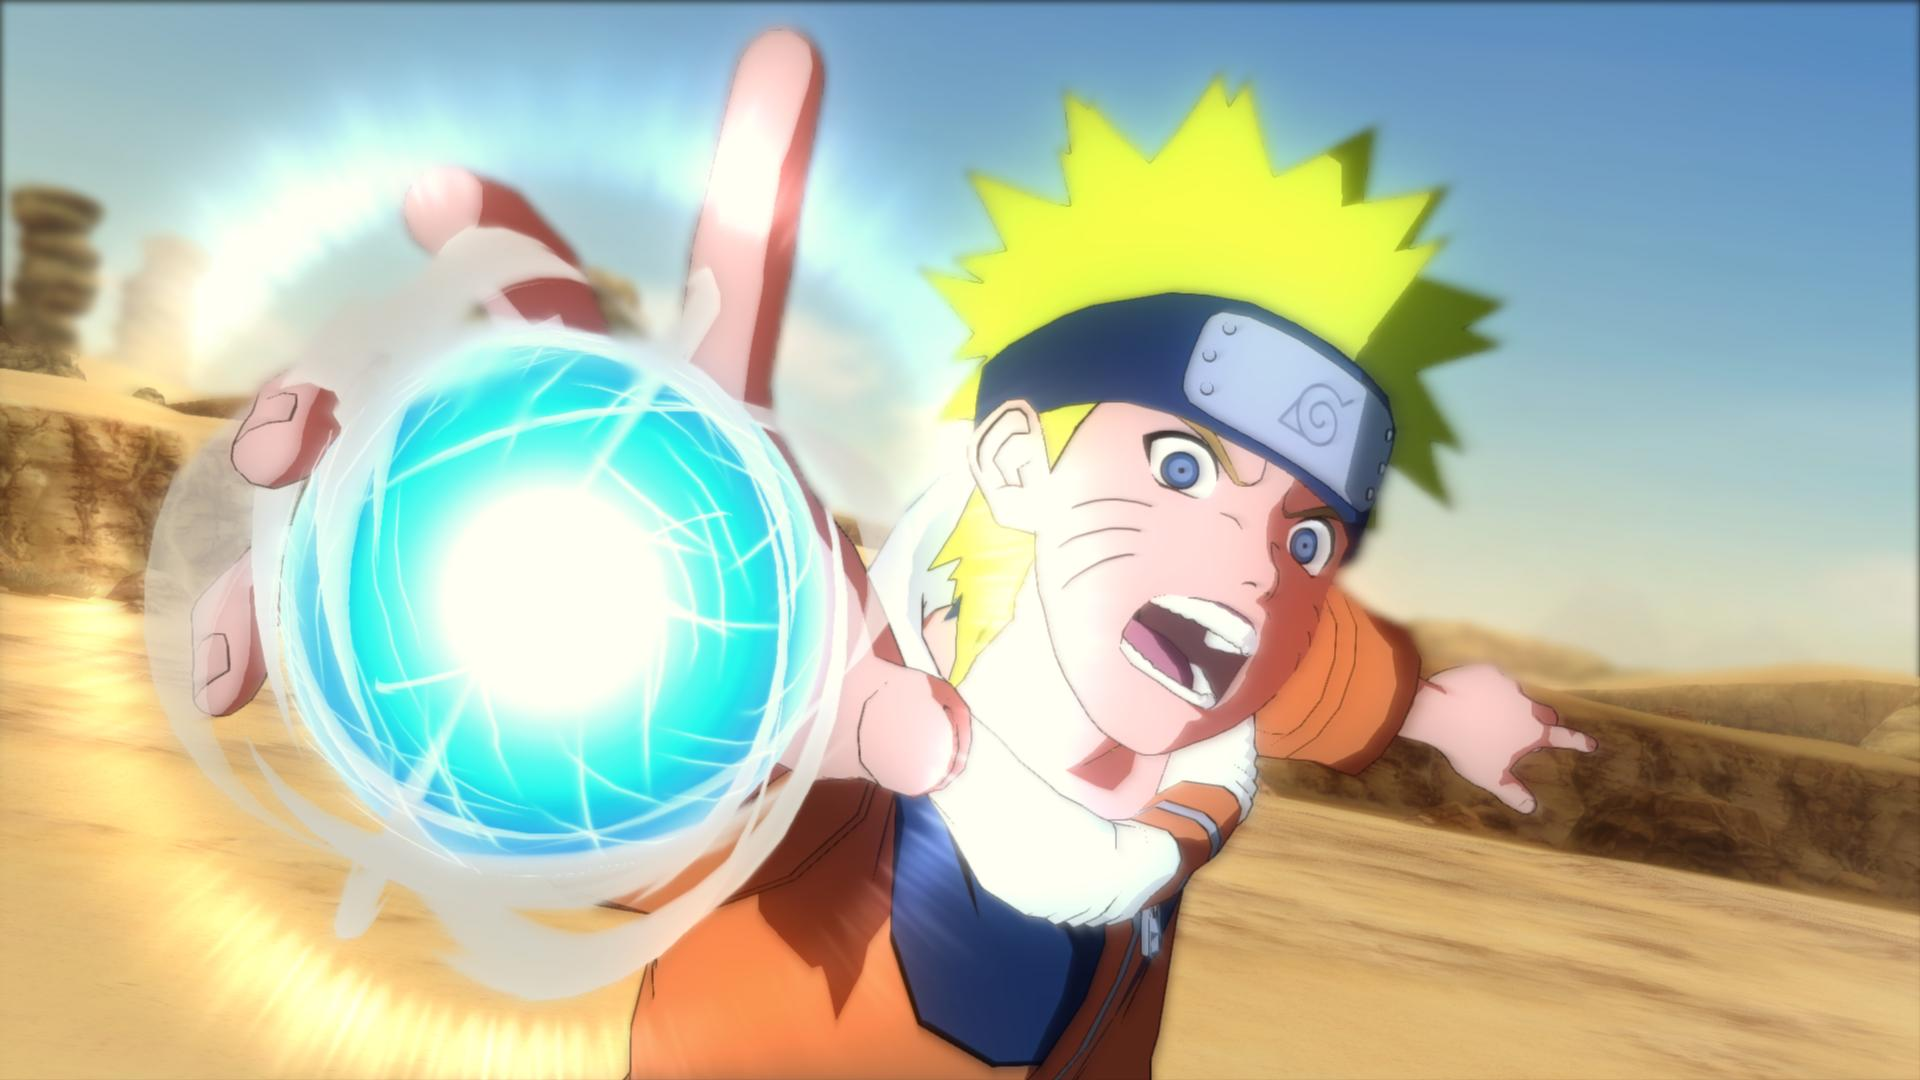 naruto rasengan Computer Wallpapers Desktop Backgrounds 1920x1080 1920x1080